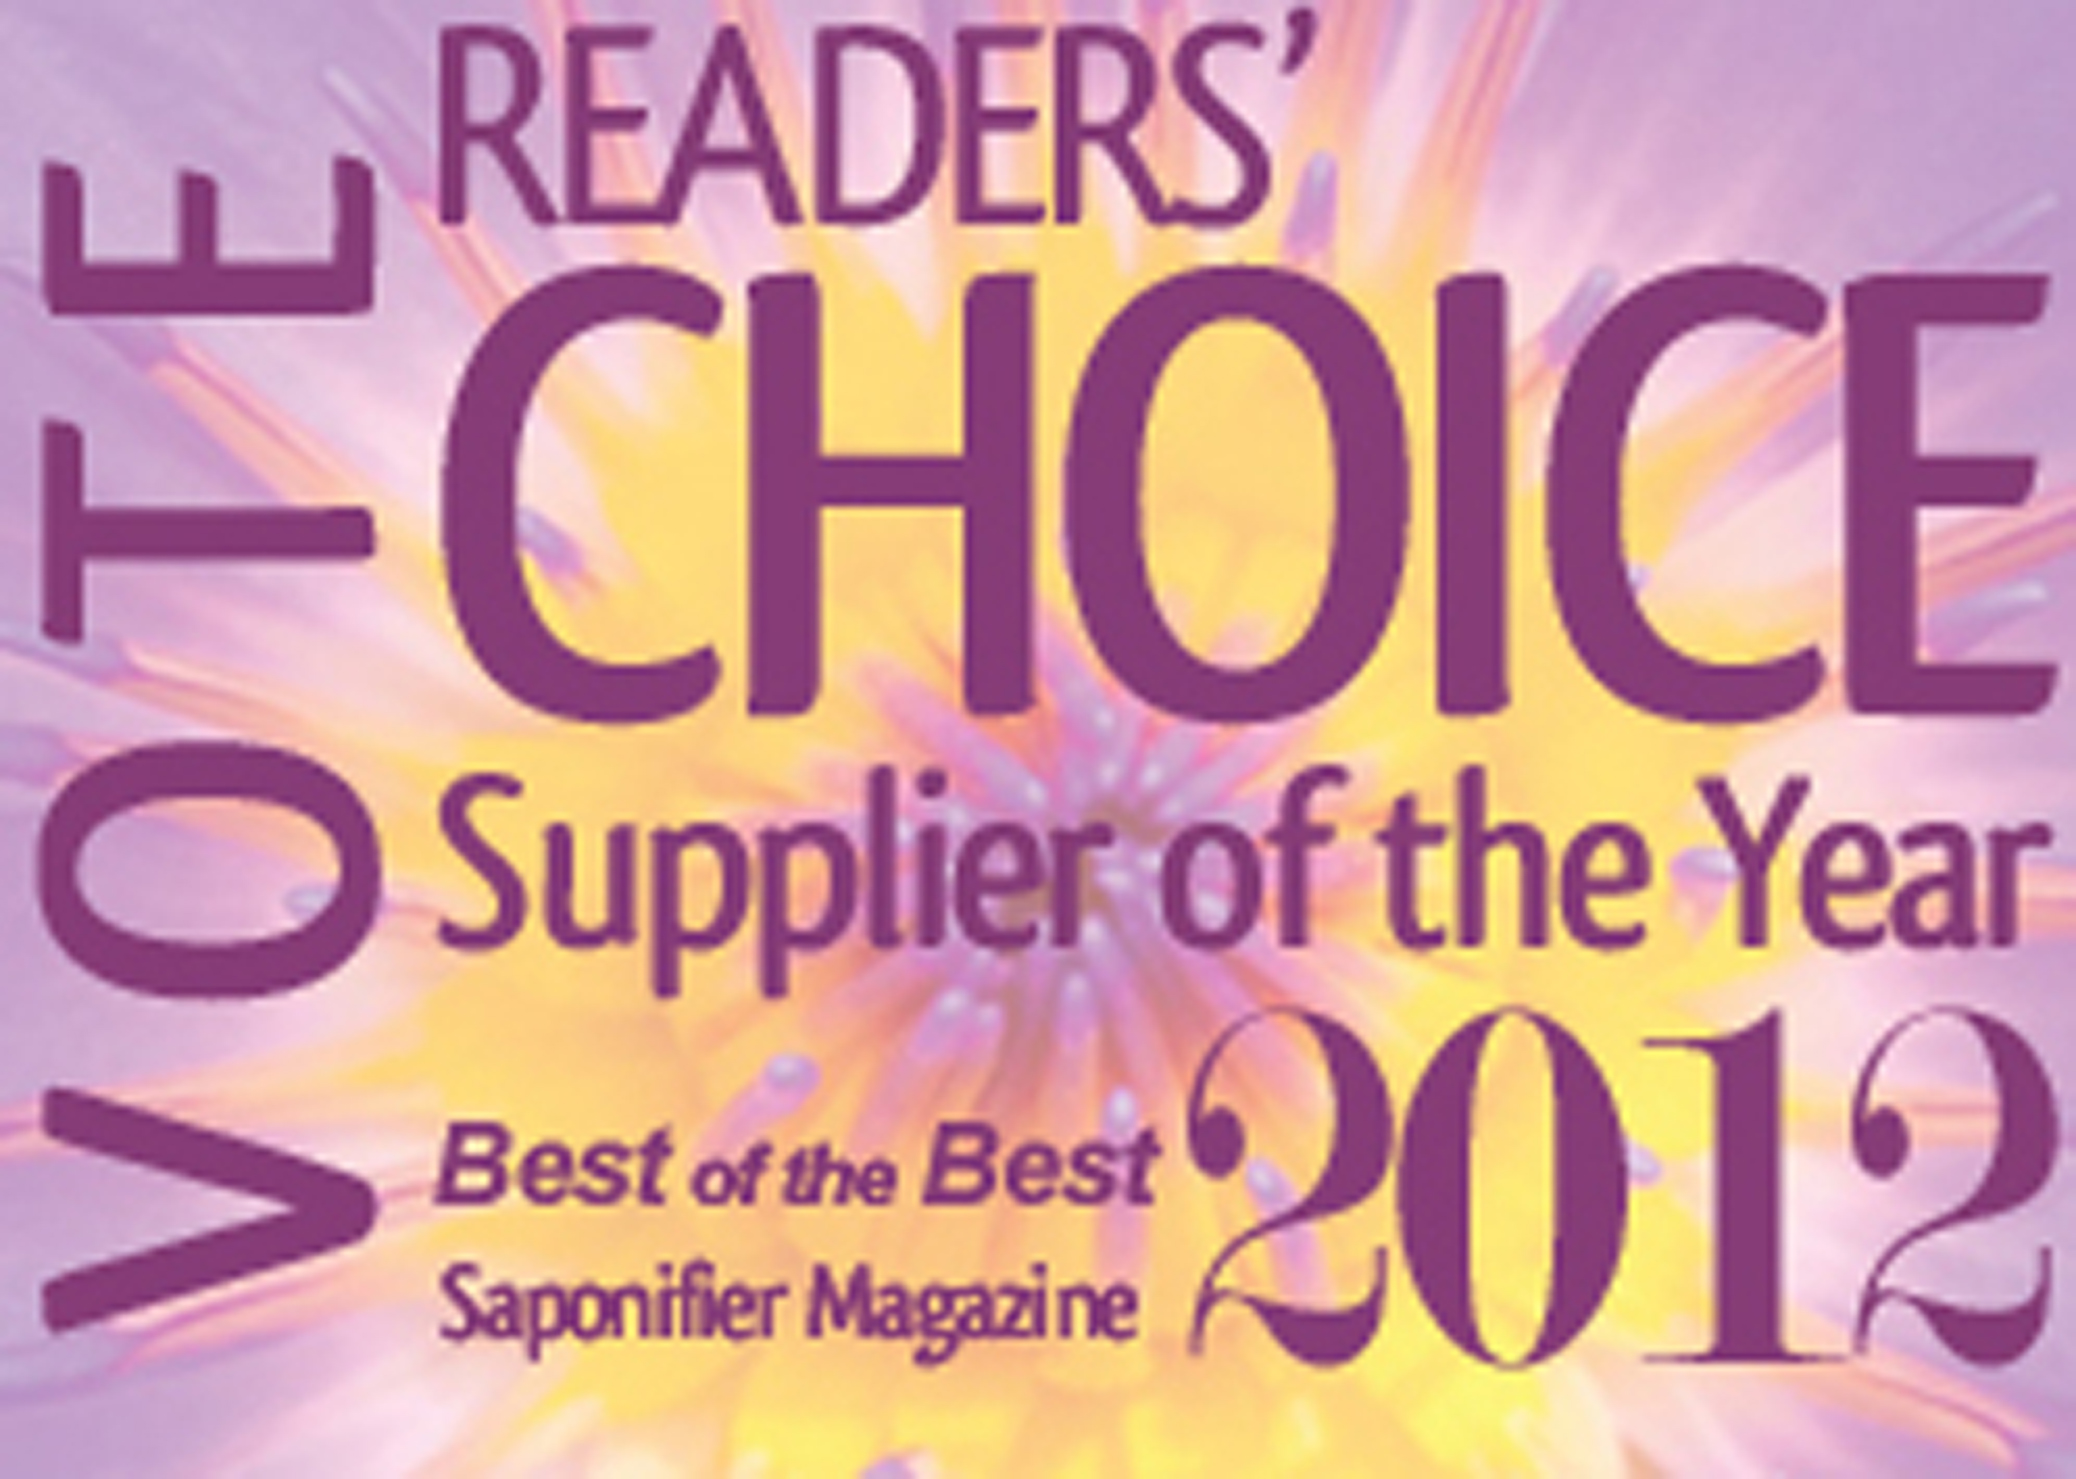 Vote for Saponifier Magazine's Supplier of the Year